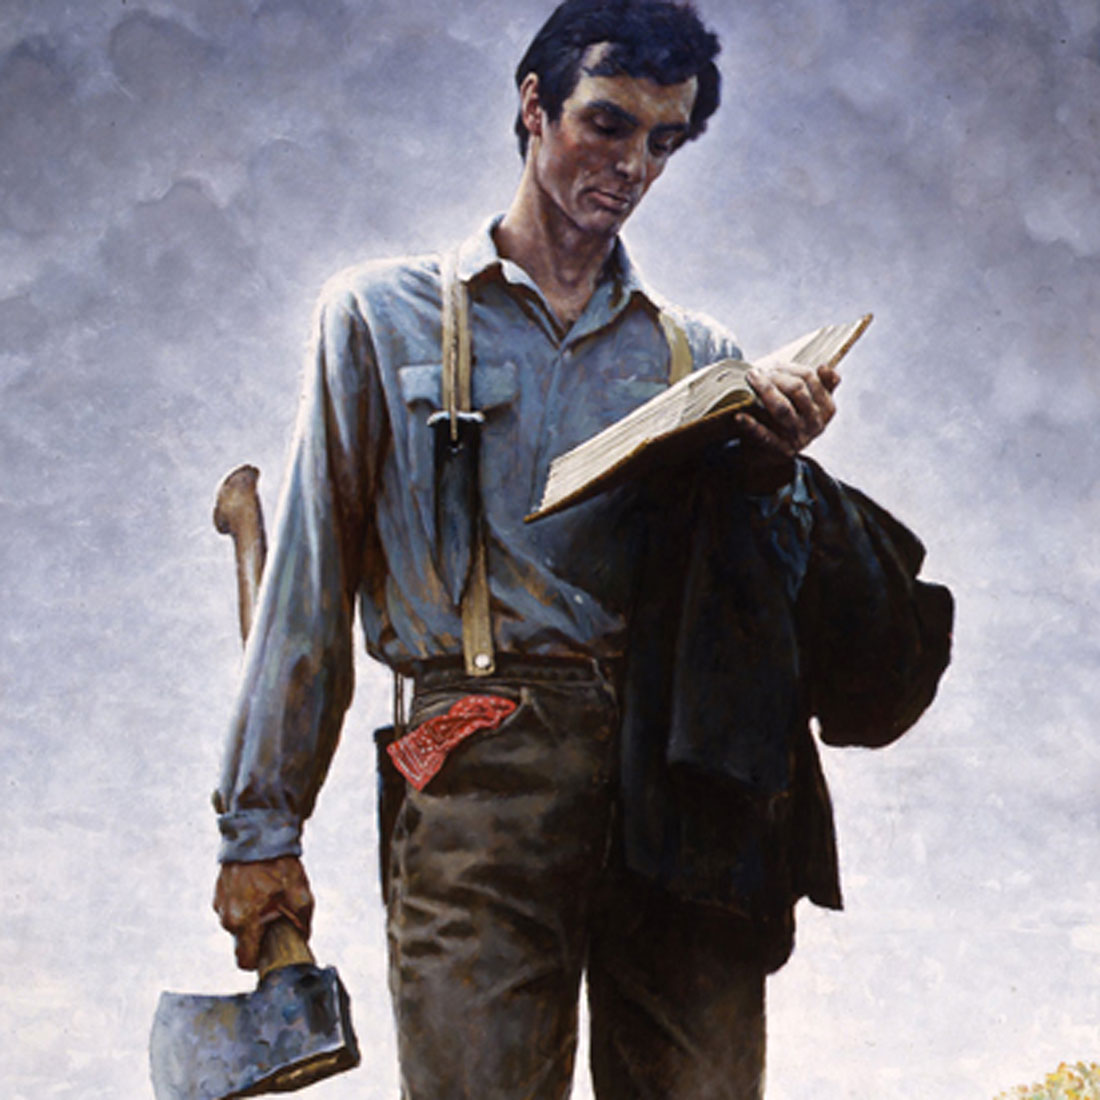 detail of president Lincoln with book and ax